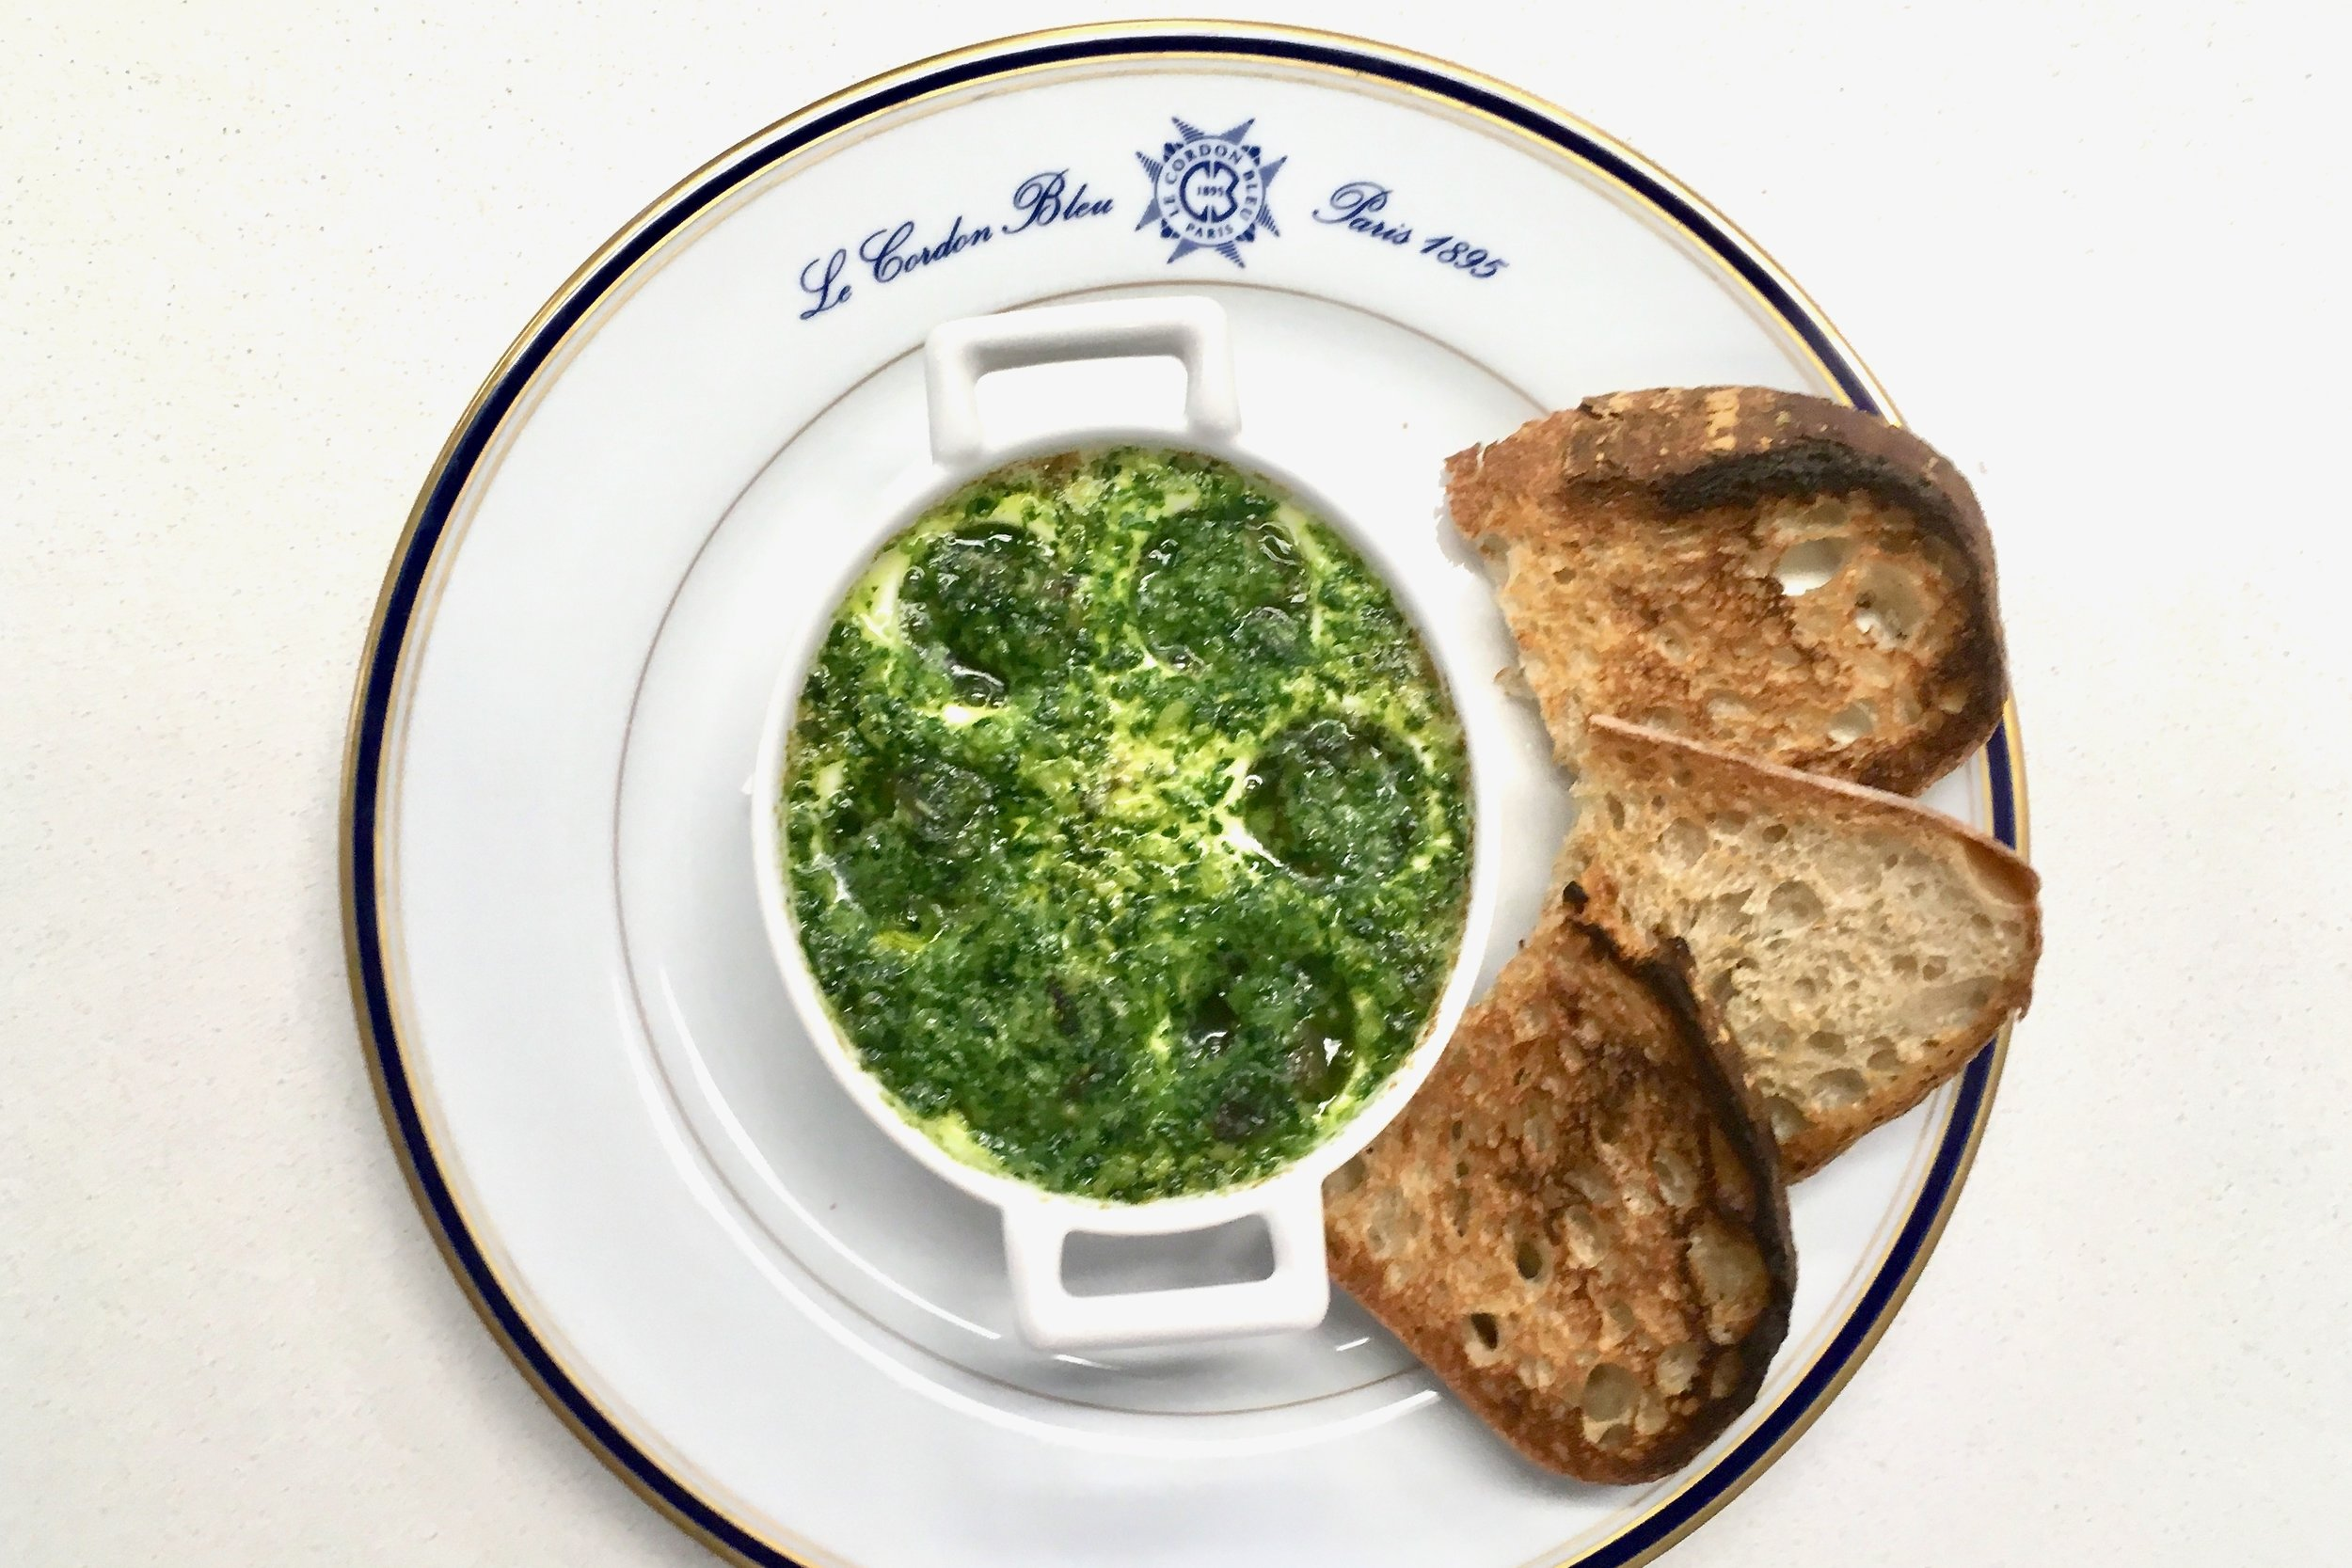 Snails in garlic and parsley butter